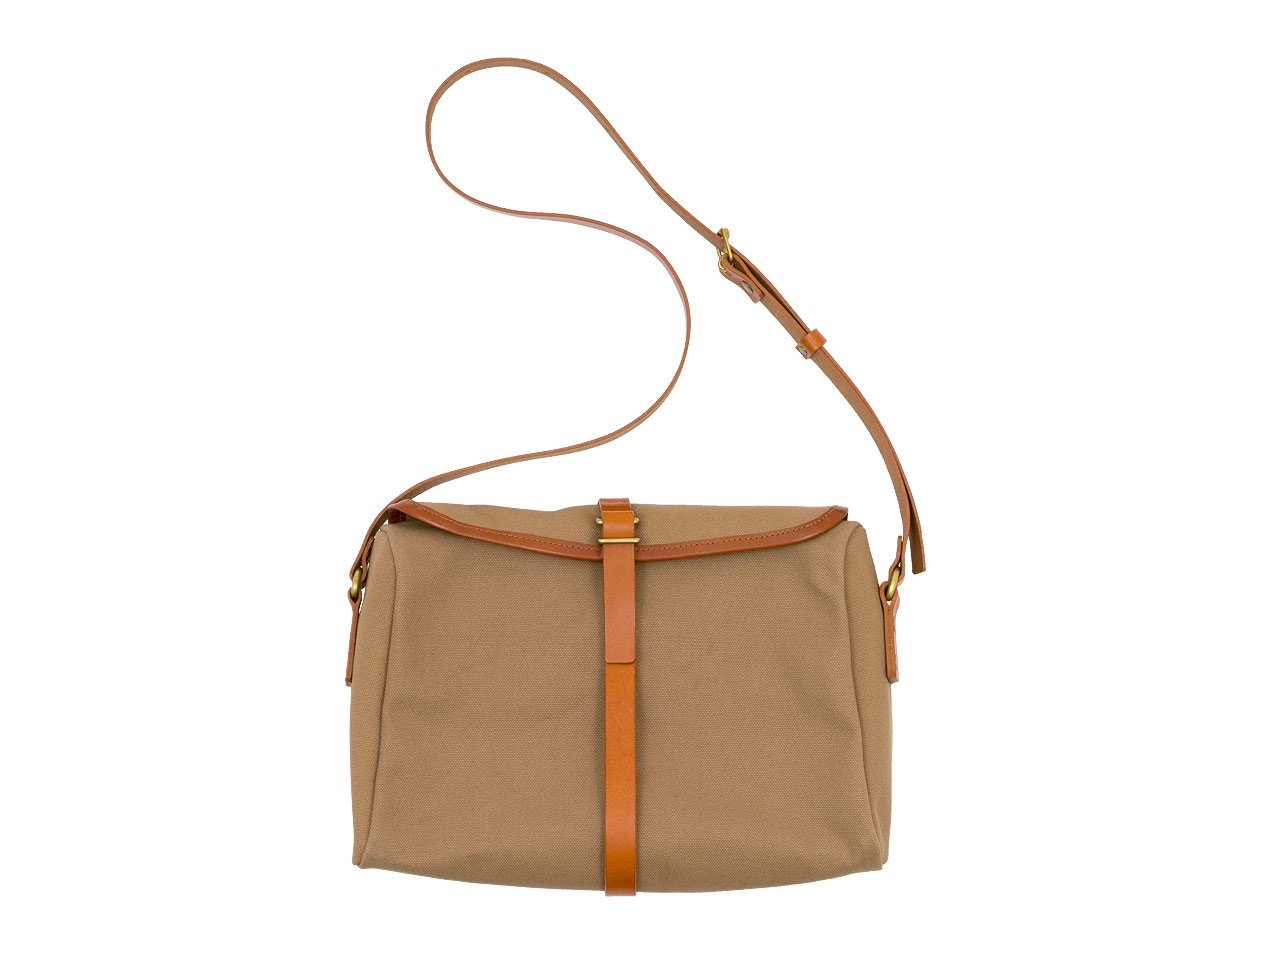 SOUTHERN FiELD INDUSTRiES Satchel 300 Desert&Tan